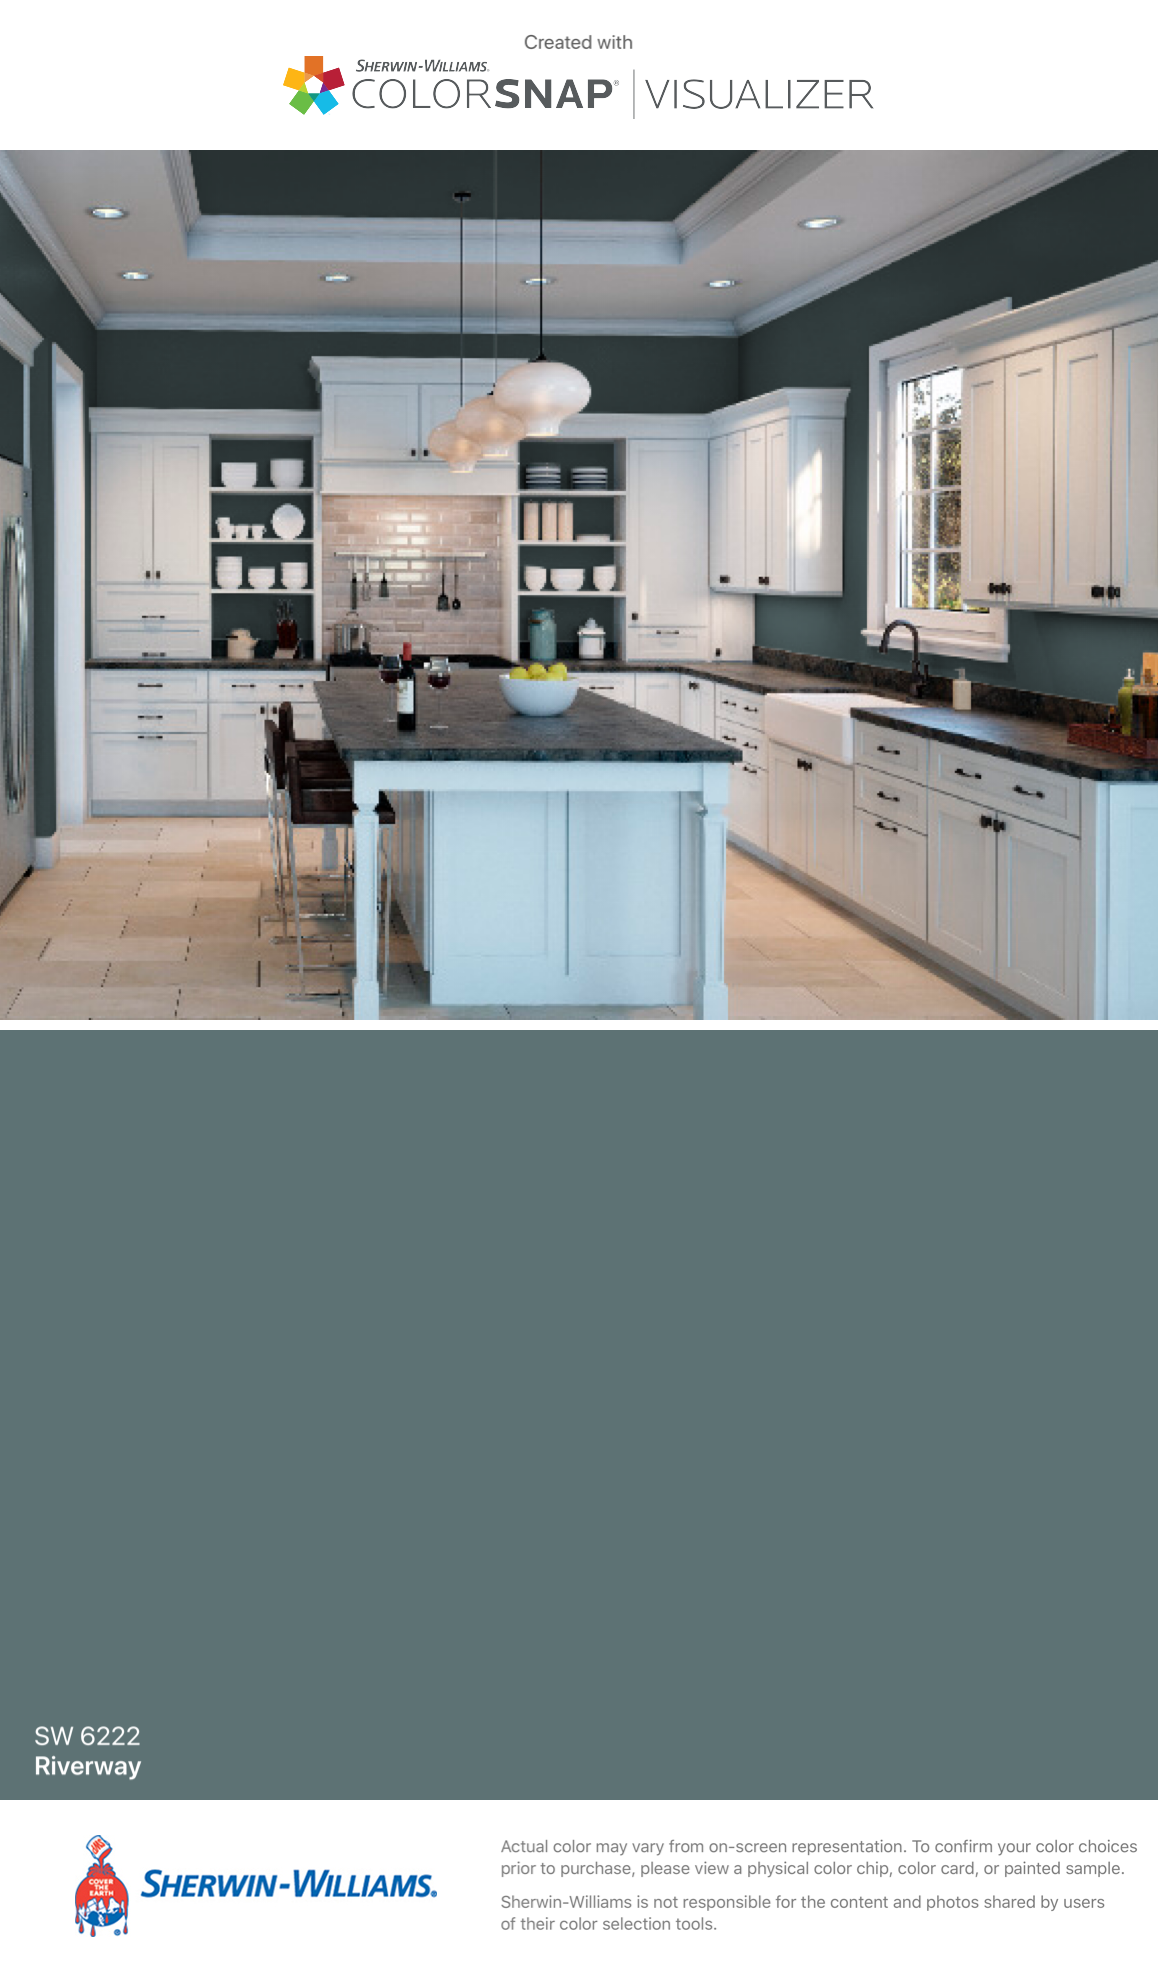 I Found This Color With Colorsnap Visualizer For Iphone By Sherwin Williams Riverway Sw 6222 Kitchen Paint Painting Kitchen Cabinets Kitchen Cabinet Colors